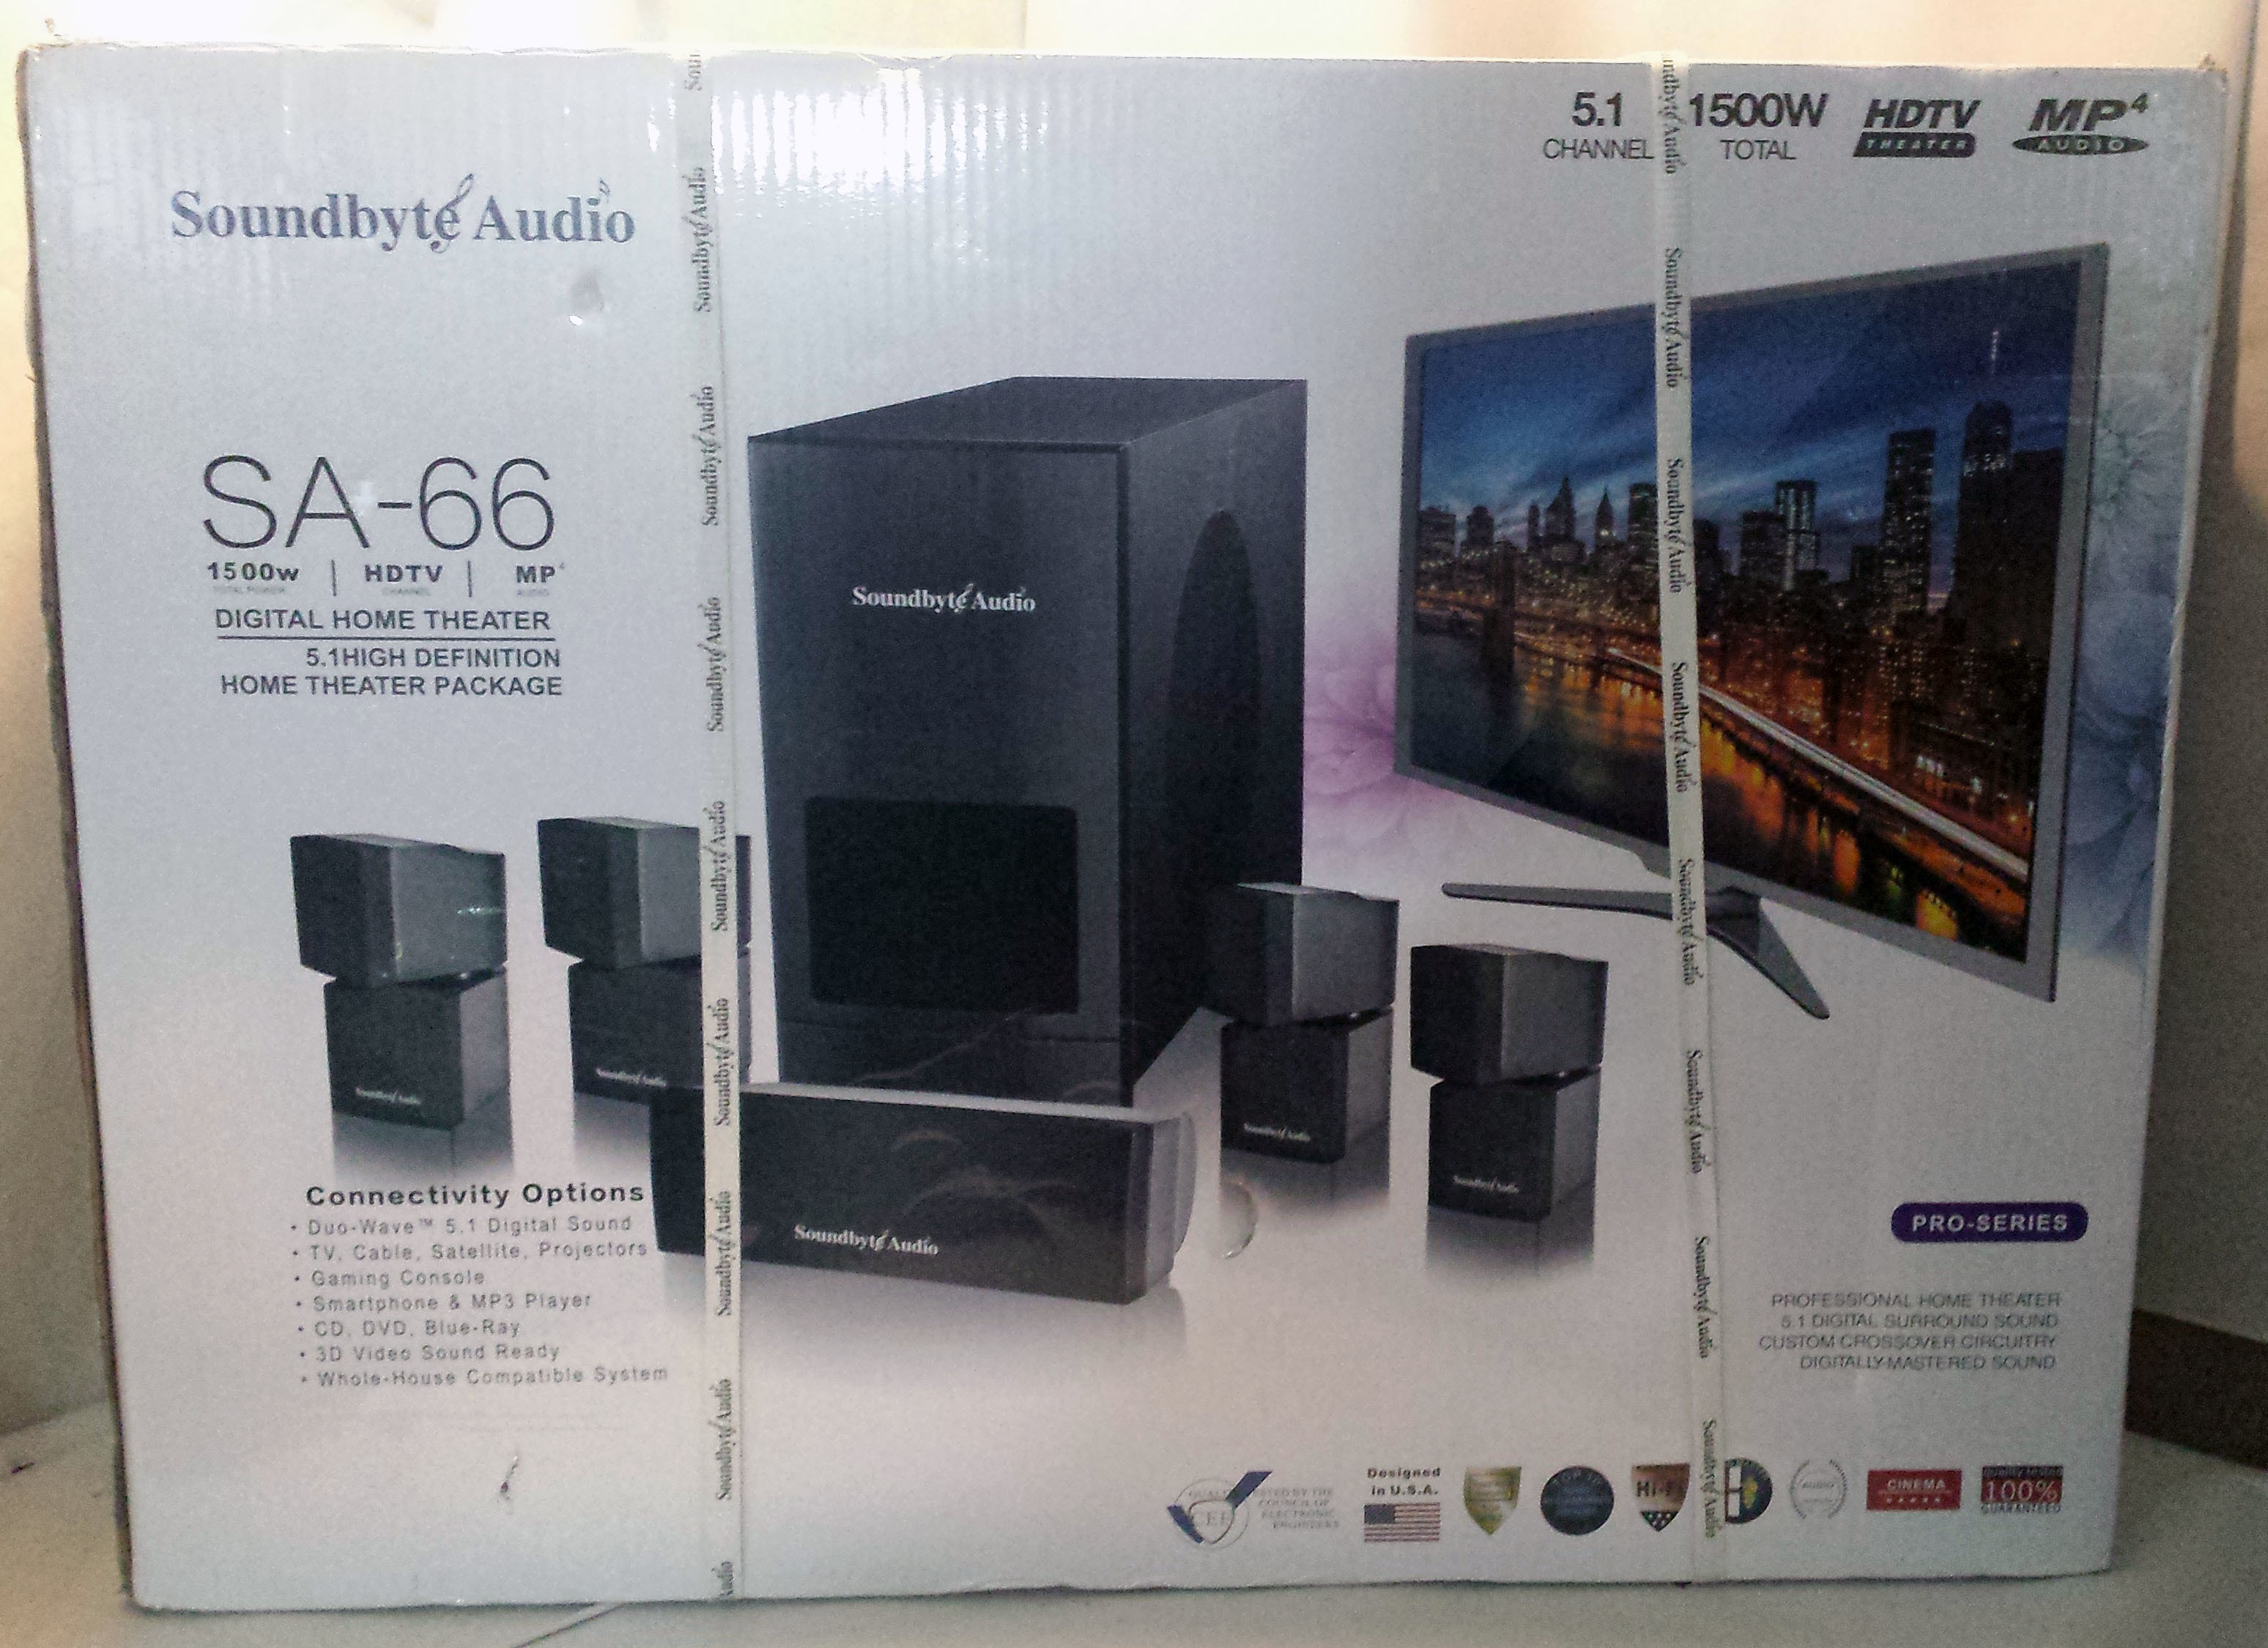 Soundbyte Audio Home Theater System SA-66 Brand New - Open Box